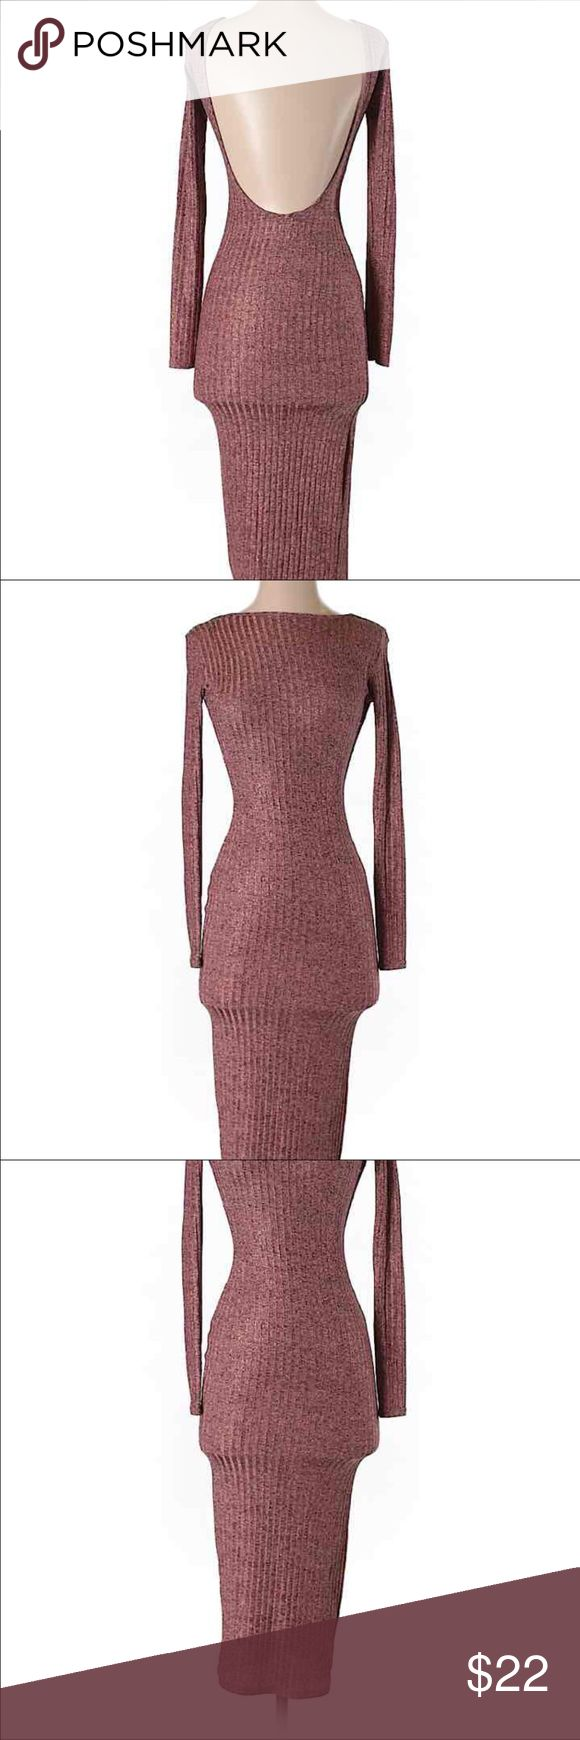 Missguided dress size 1